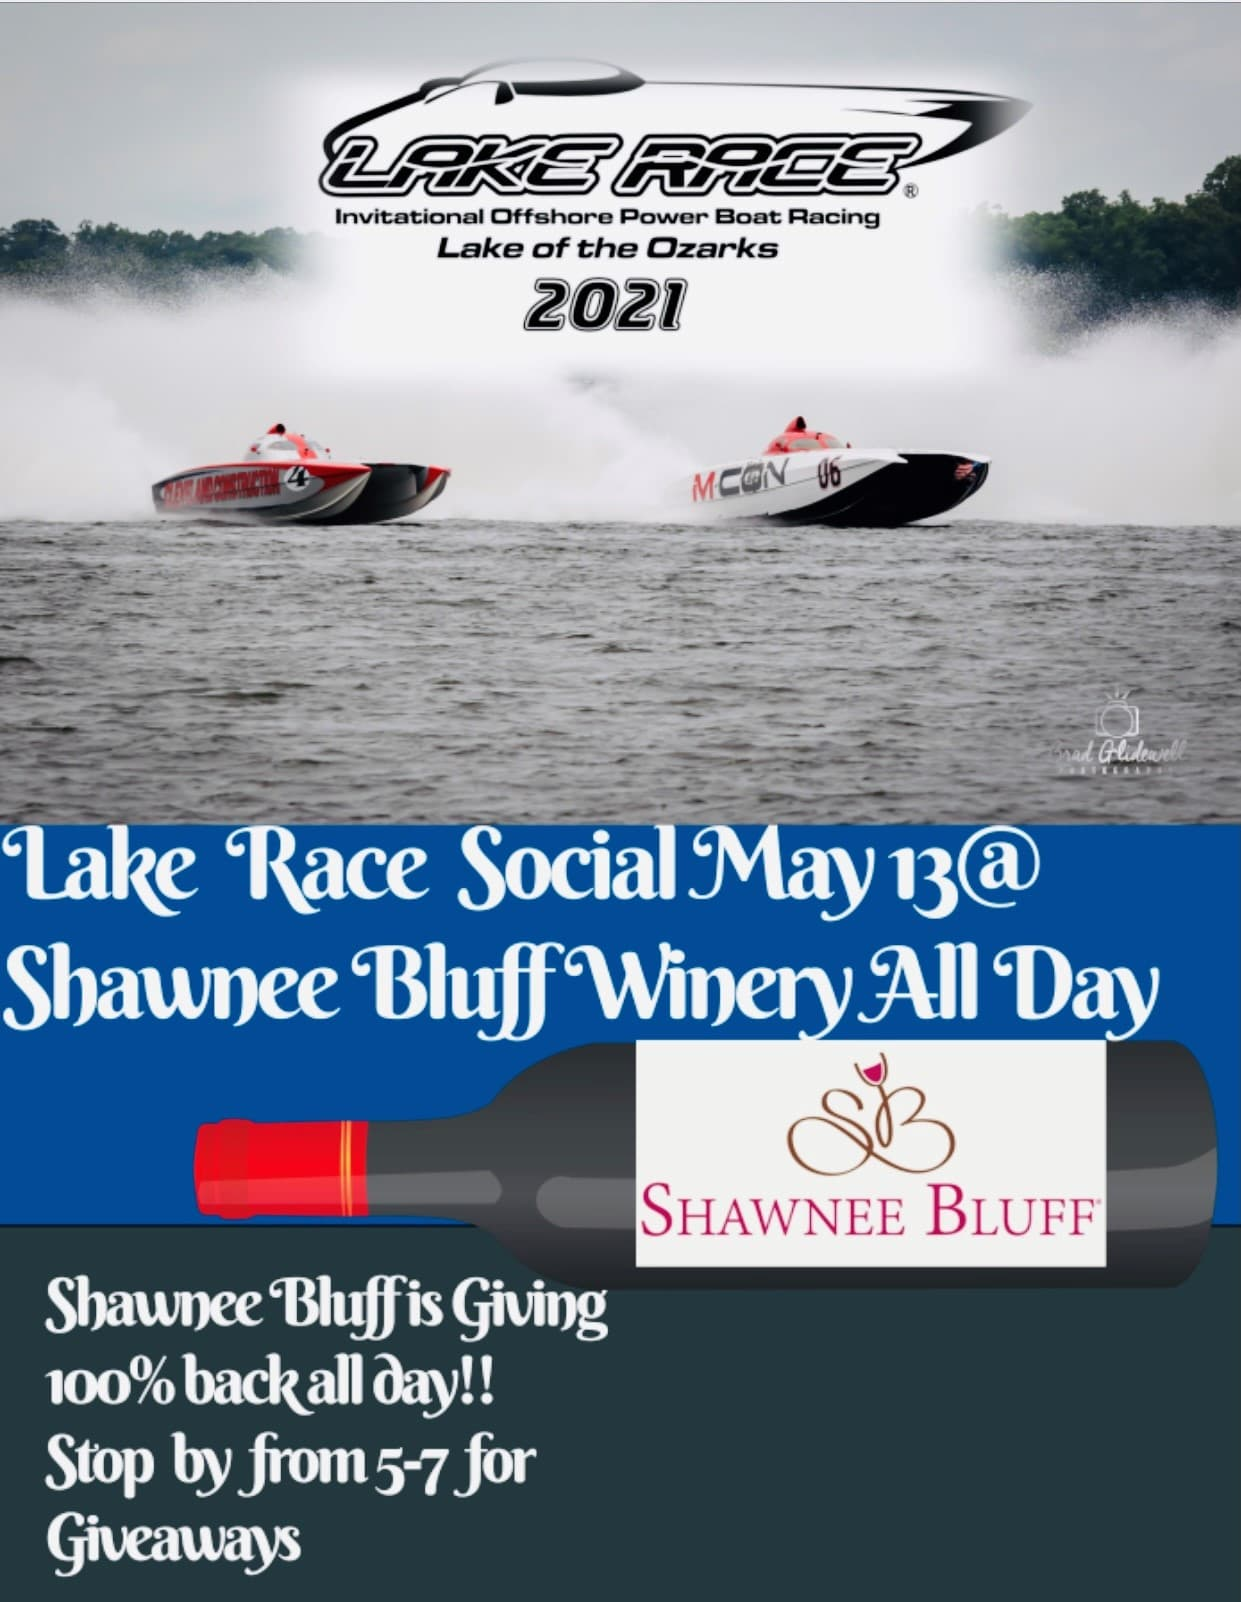 May 13th Shawnee Winery Event